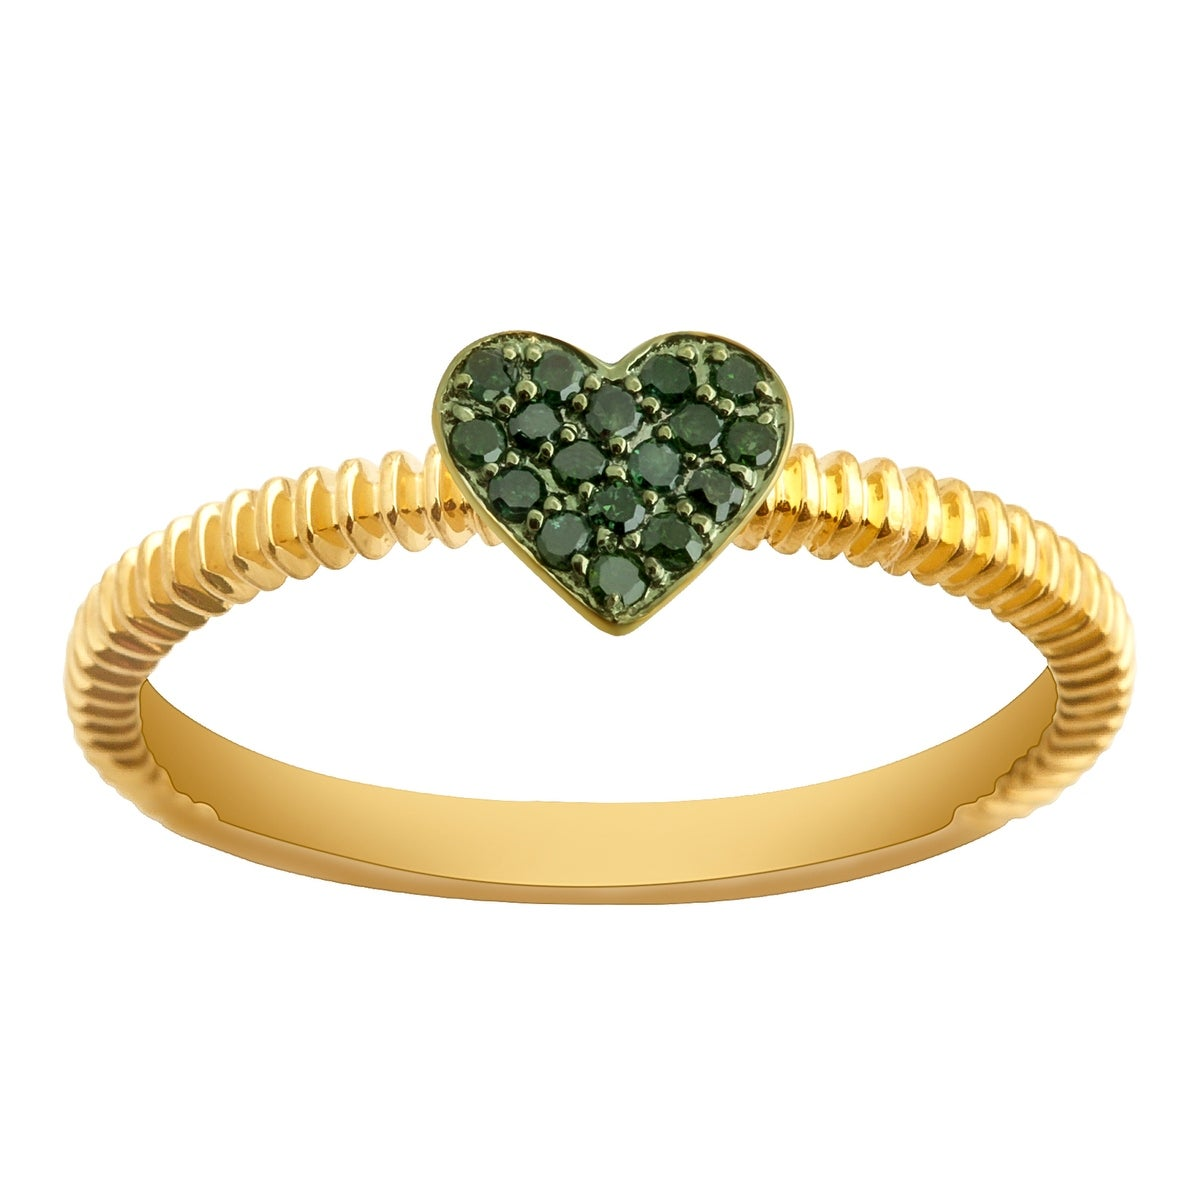 Prism Jewel Round Green Diamond Heart Shaped Valentine Ring - Thumbnail 0